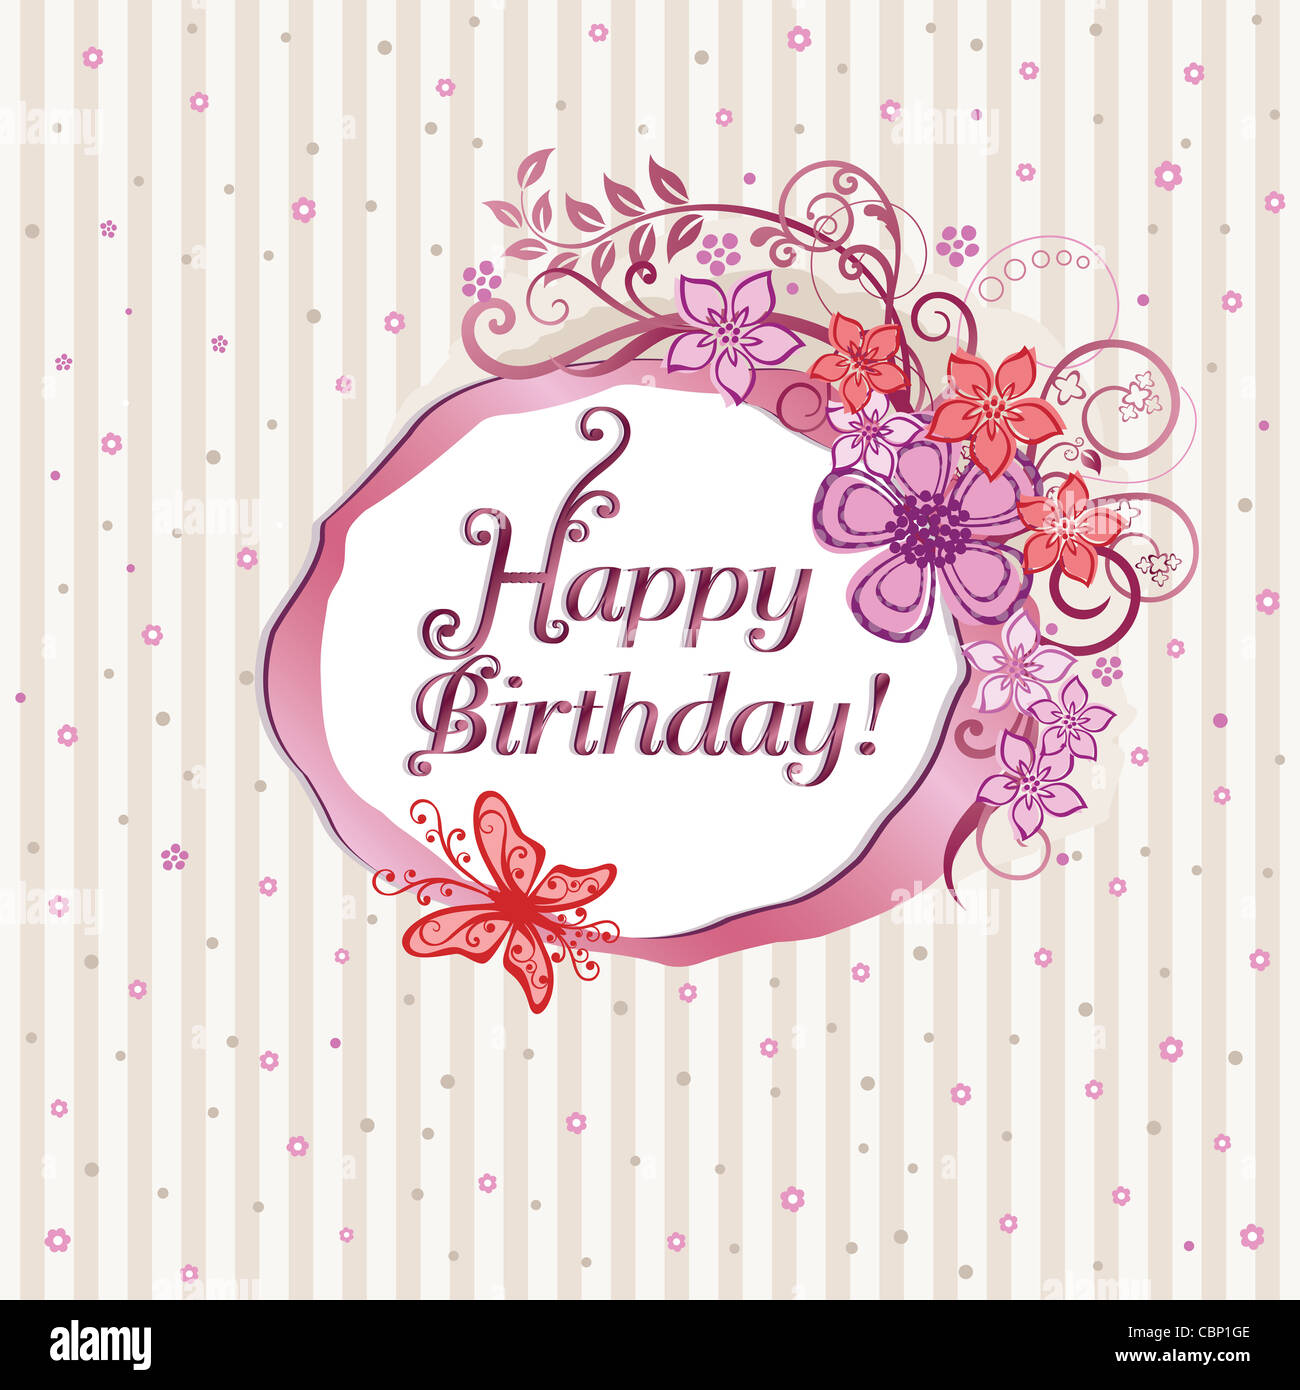 Pink flowers and butterflies happy birthday card design